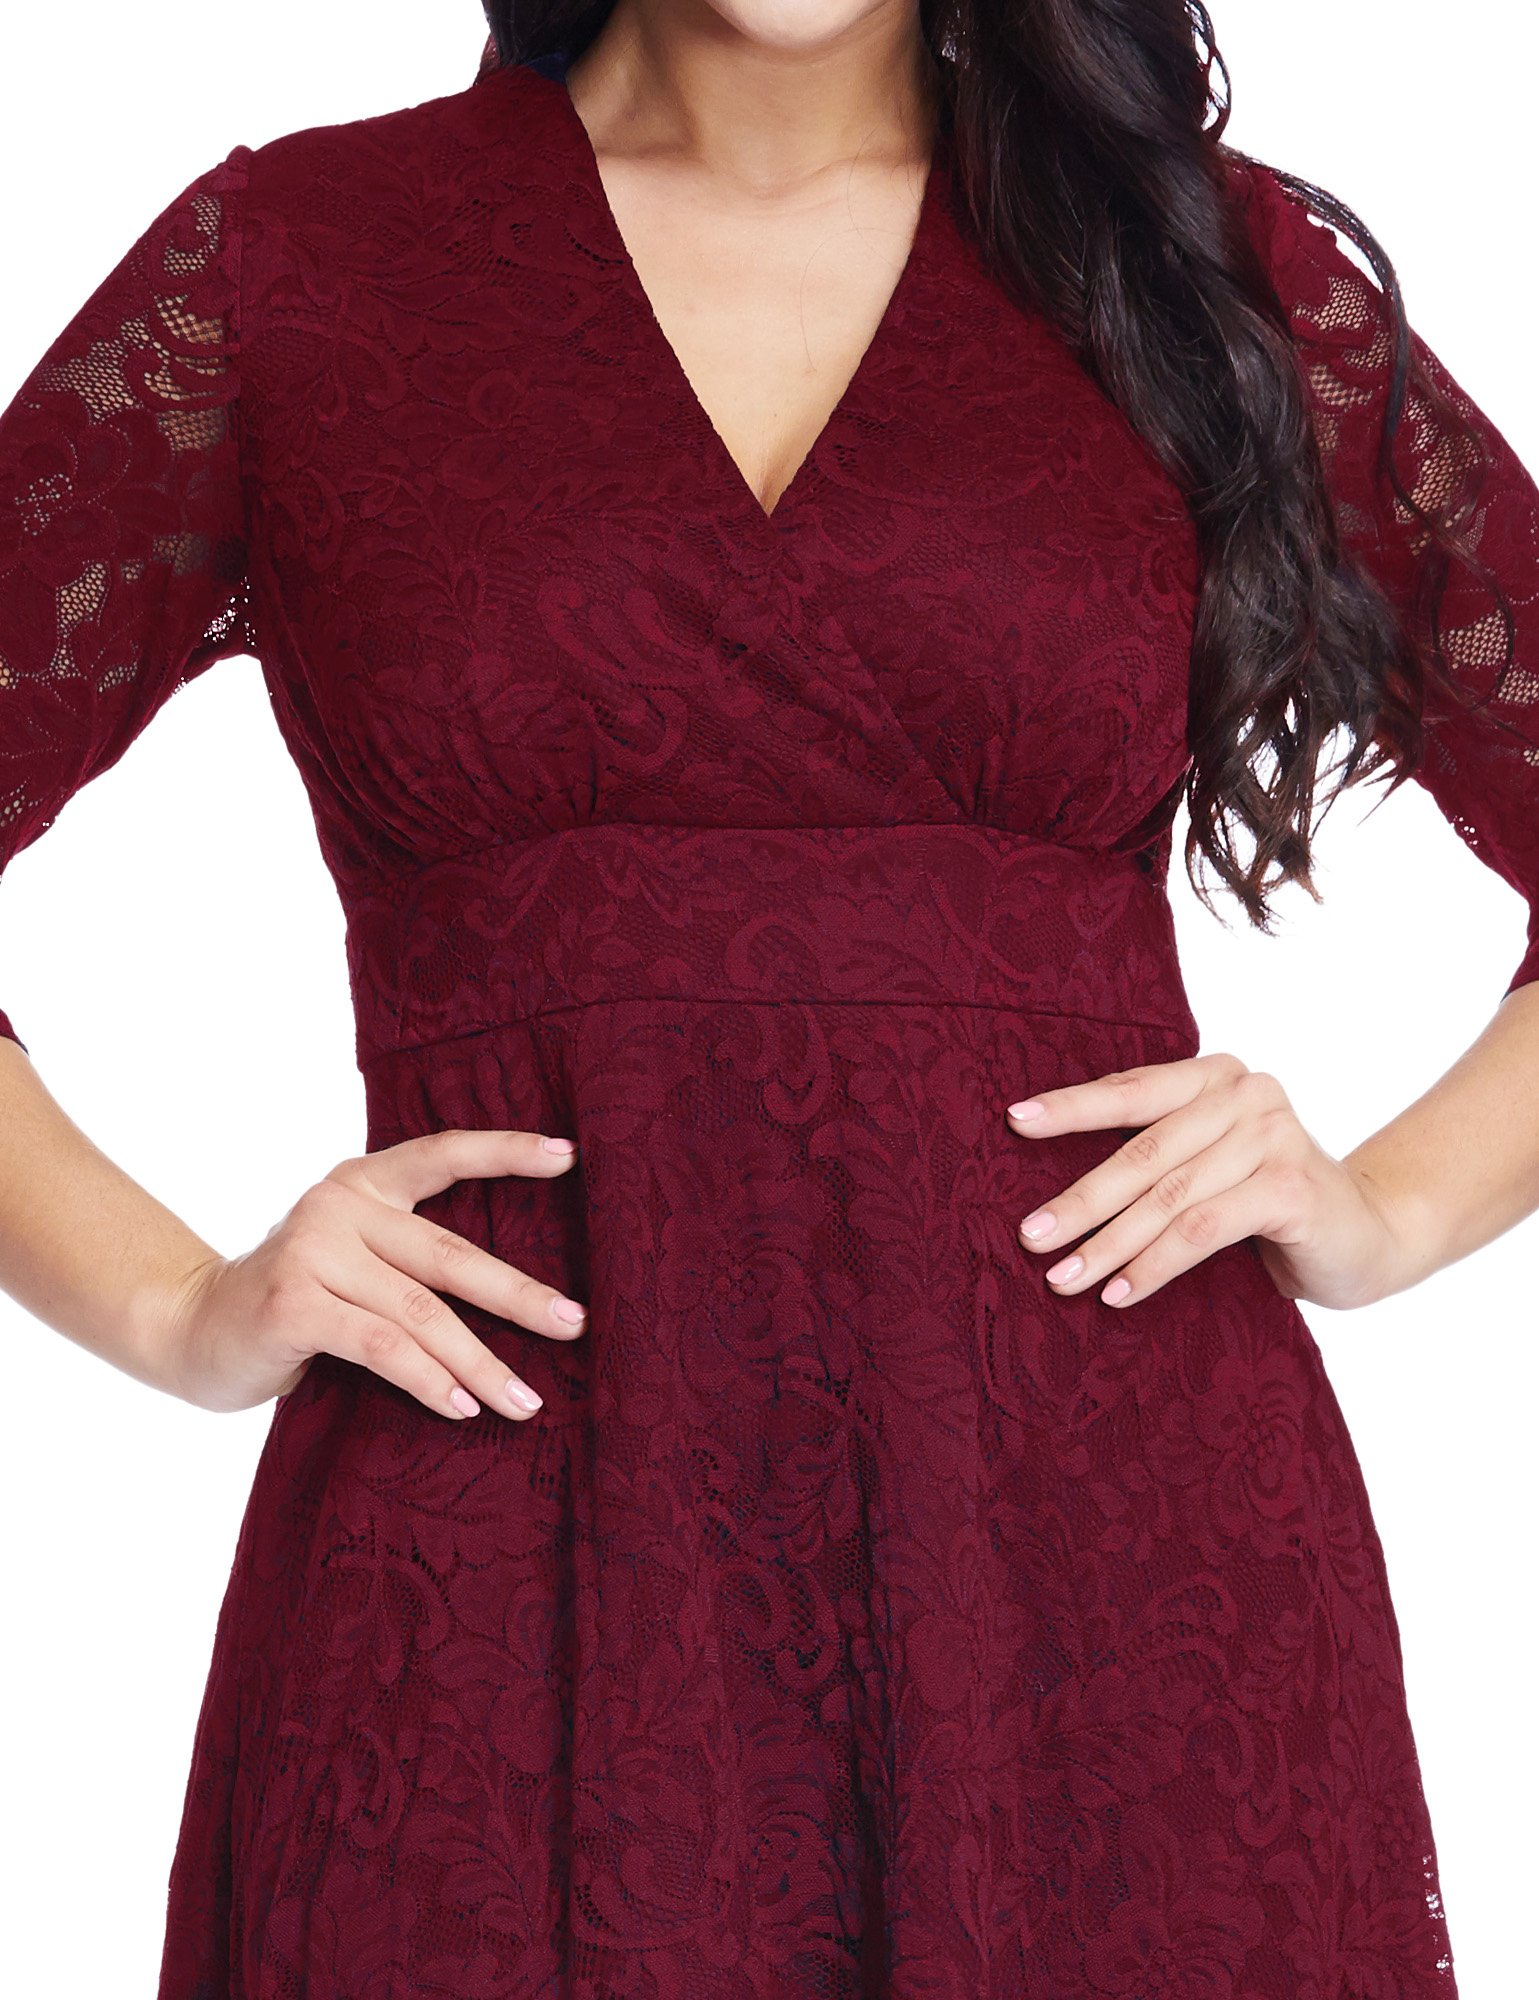 GRAPENT Women's Lace Plus Size Mother Of The Bride Skater Dress Bridal Wedding Party Maroon 16W by GRAPENT (Image #6)